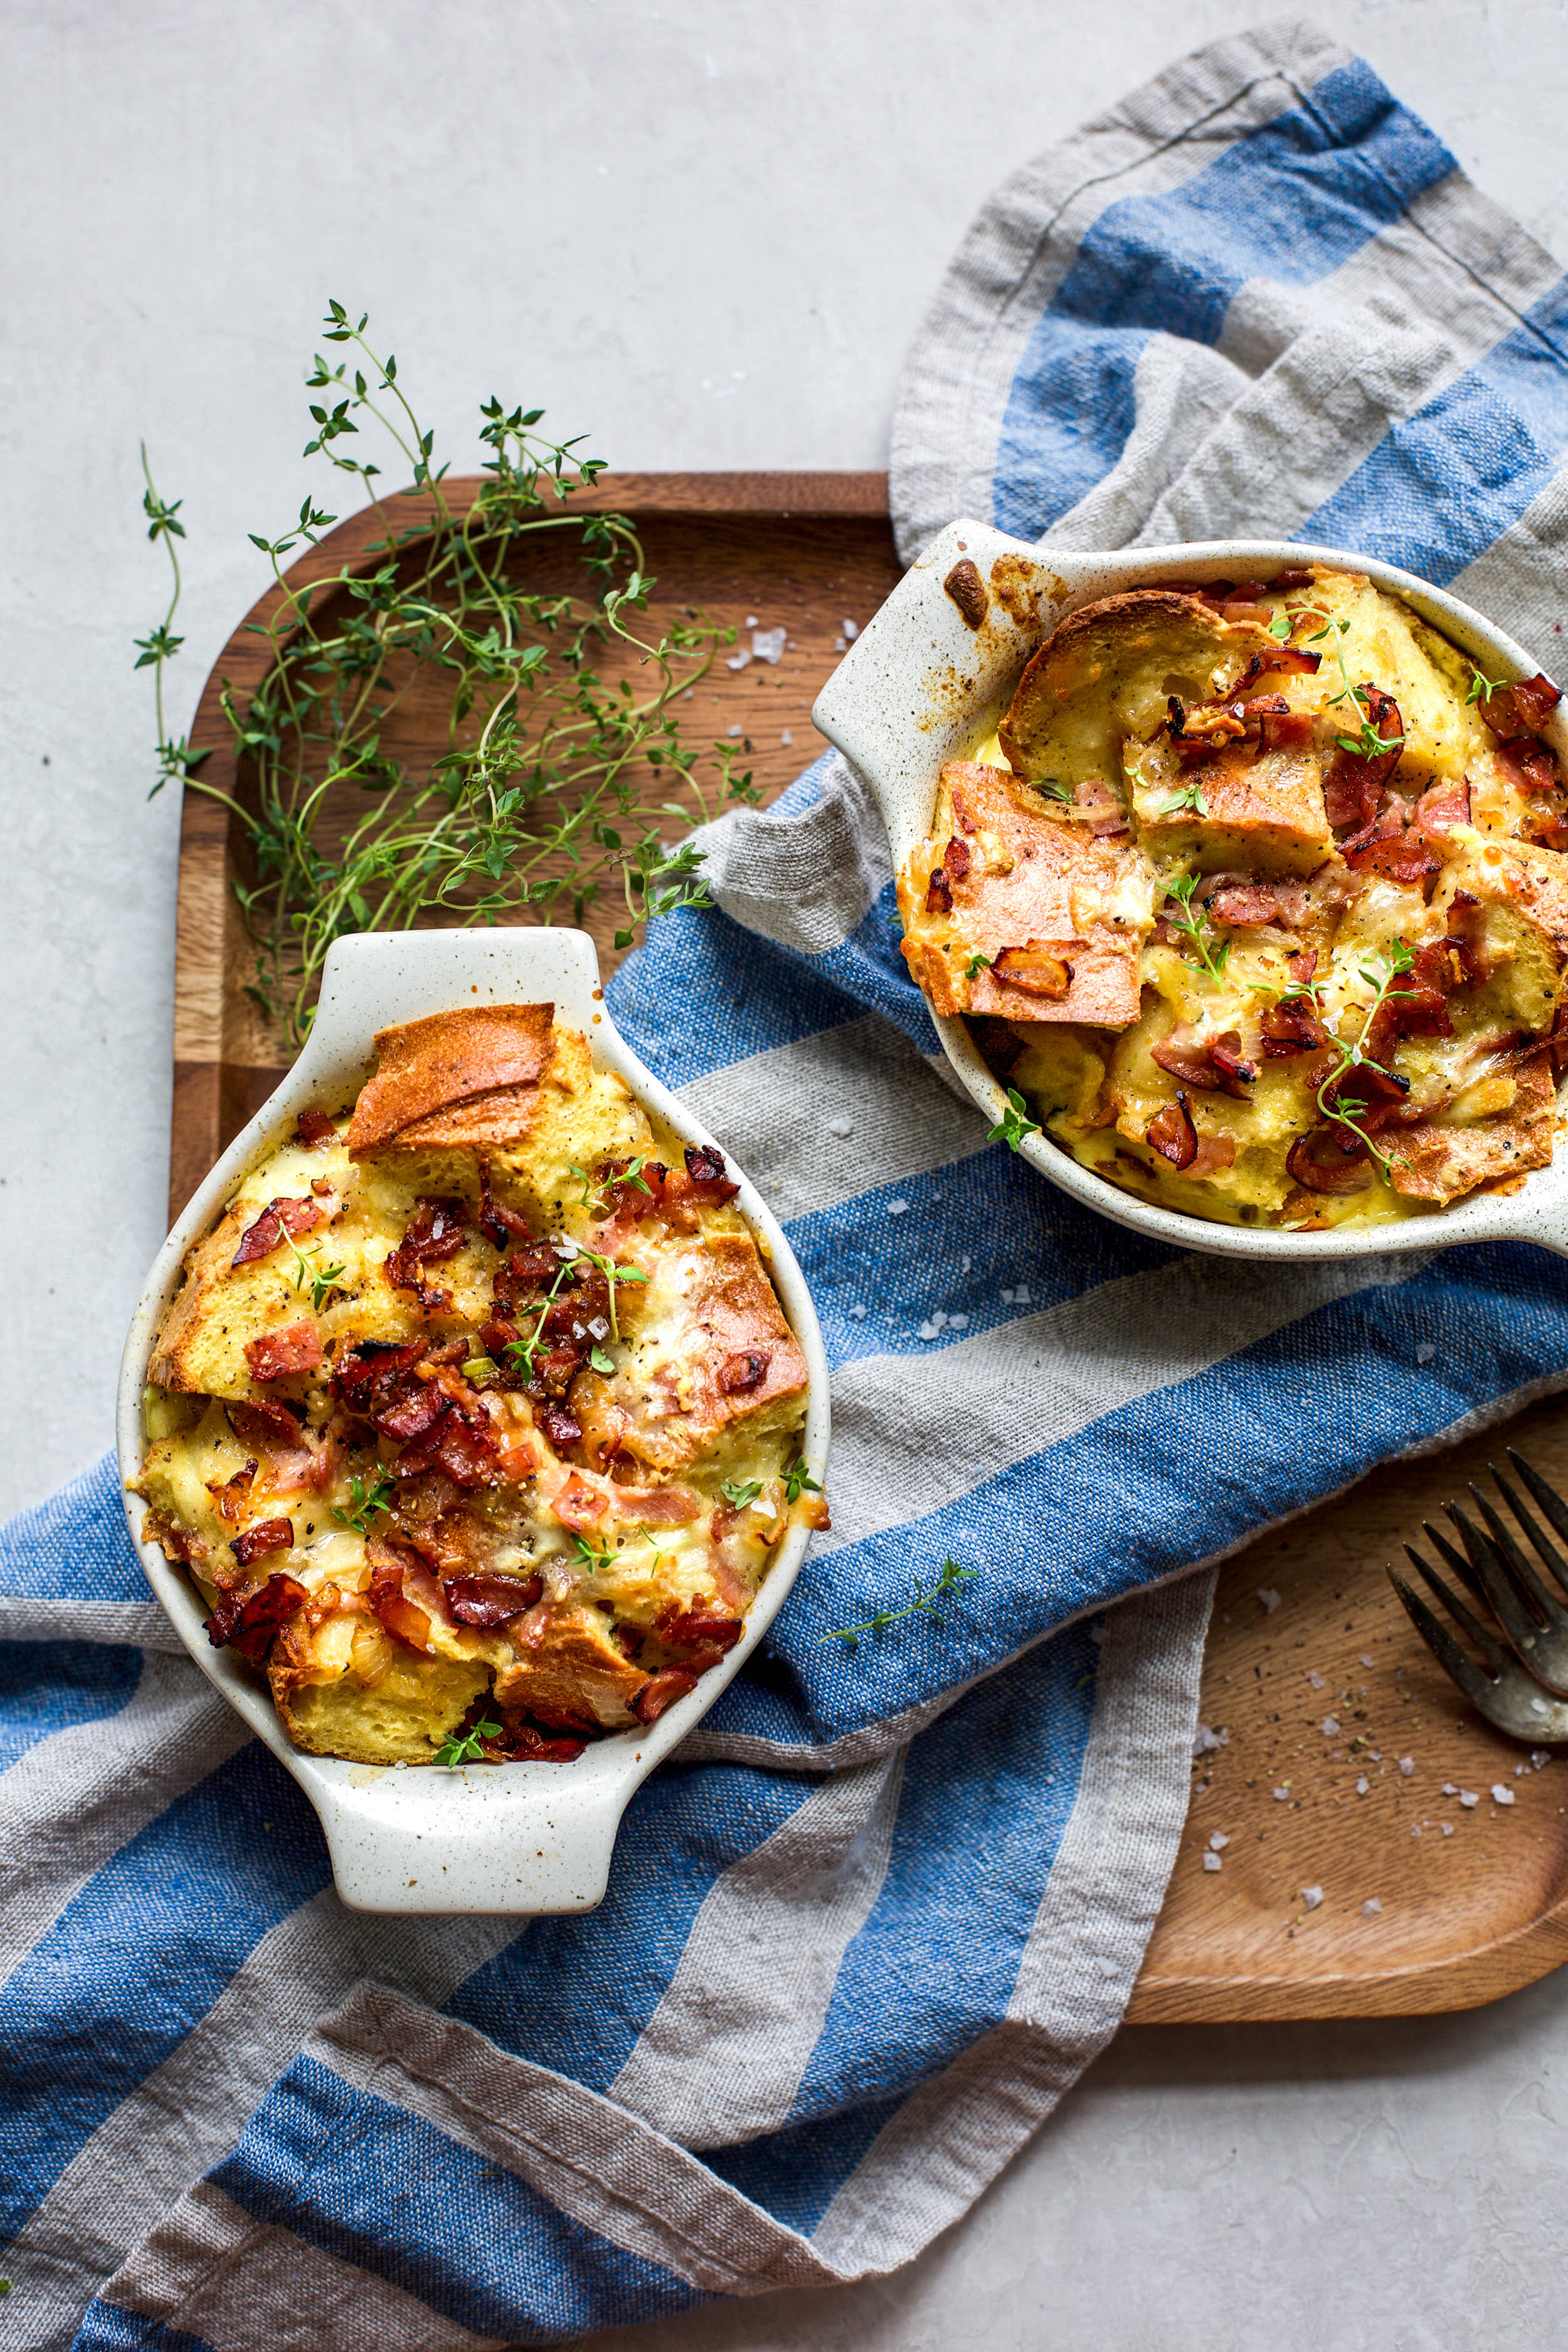 Savory Ham and Cheese Breakfast Bake for Two